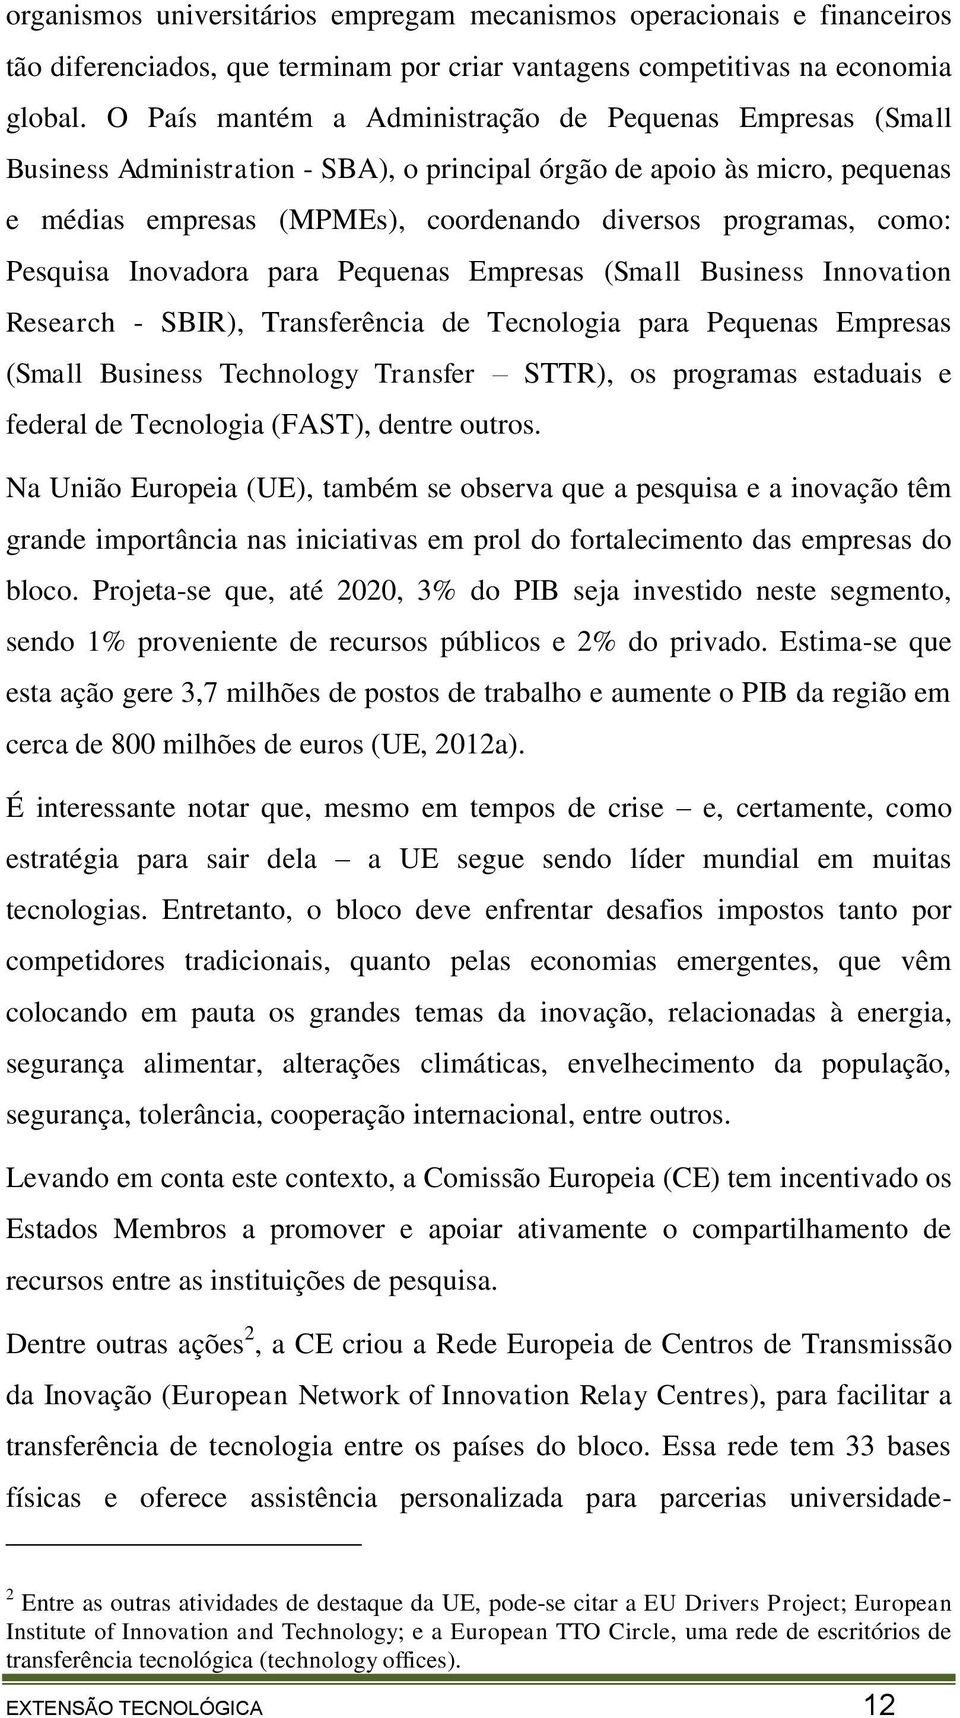 como: Pesquisa Inovadora para Pequenas Empresas (Small Business Innovation Research - SBIR), Transferência de Tecnologia para Pequenas Empresas (Small Business Technology Transfer STTR), os programas